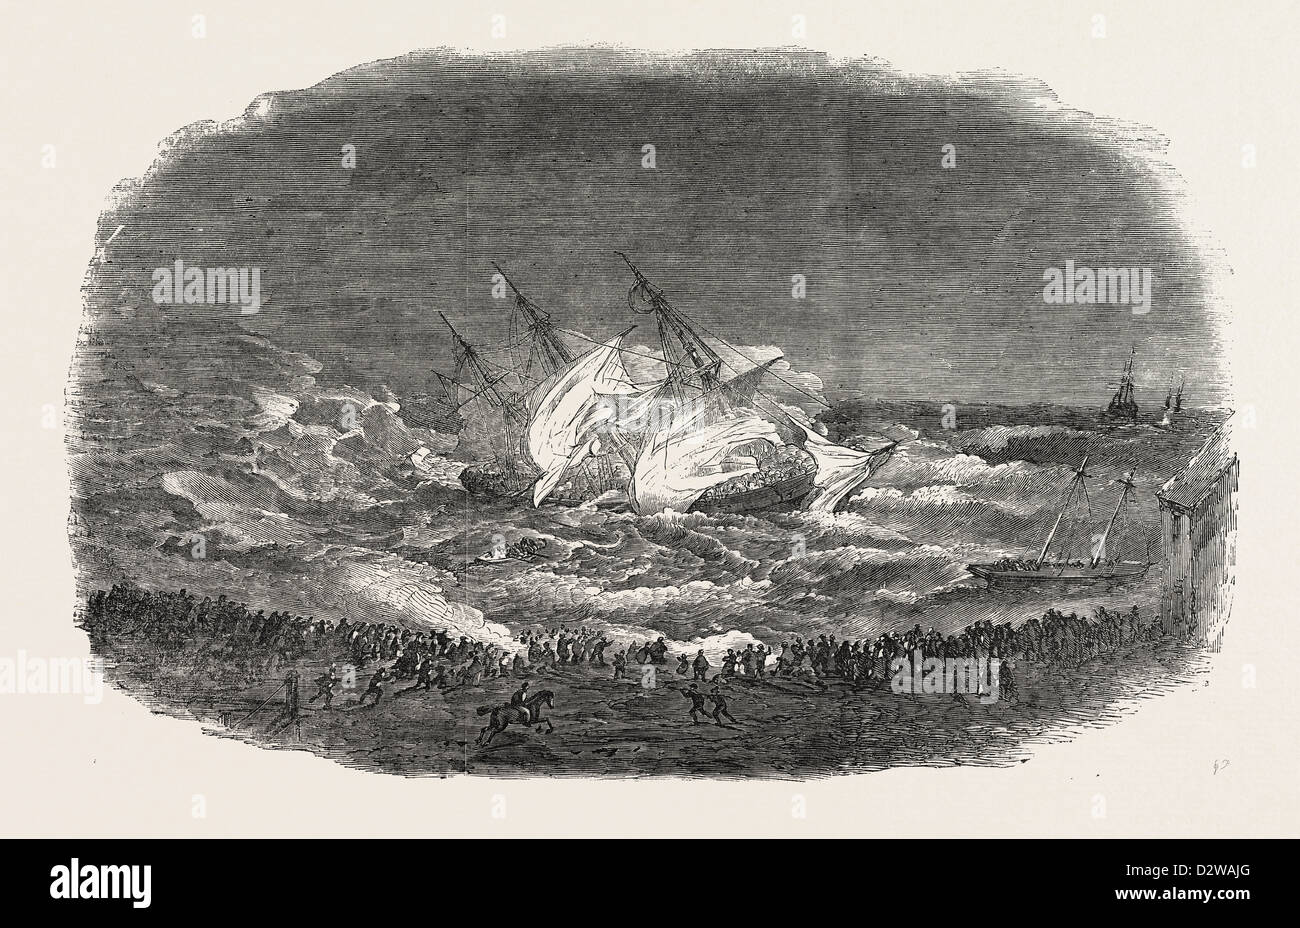 WRECK OF THE TROOP-SHIP CHARLOTTE. ATTEMPT OF THE LIFE-BOAT 1854 - Stock Image